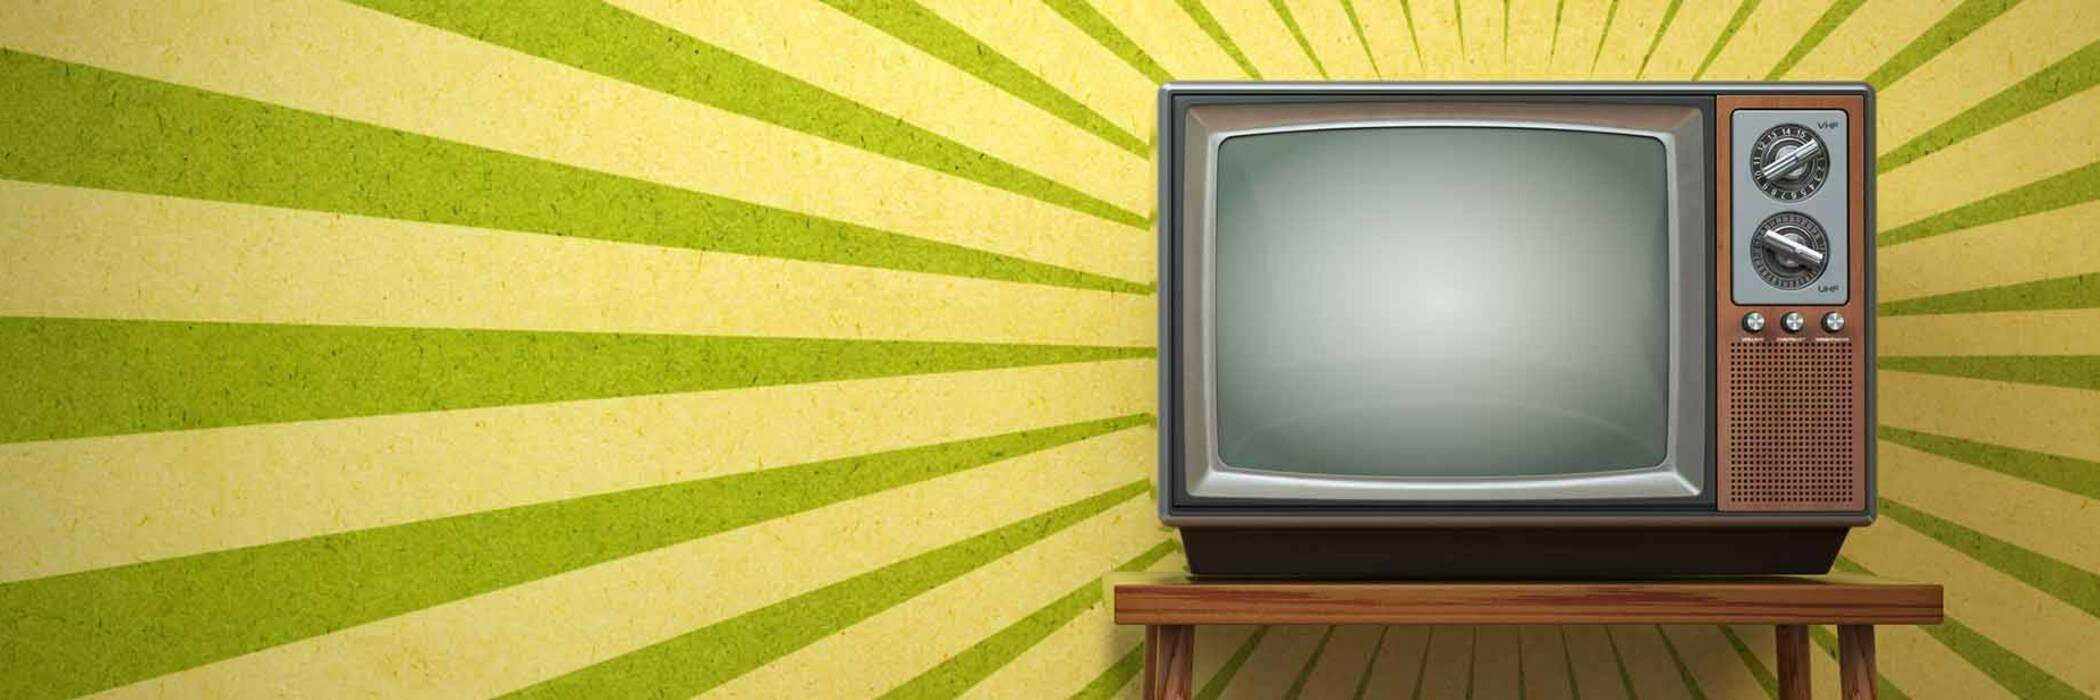 Cathode Ray TV old technology